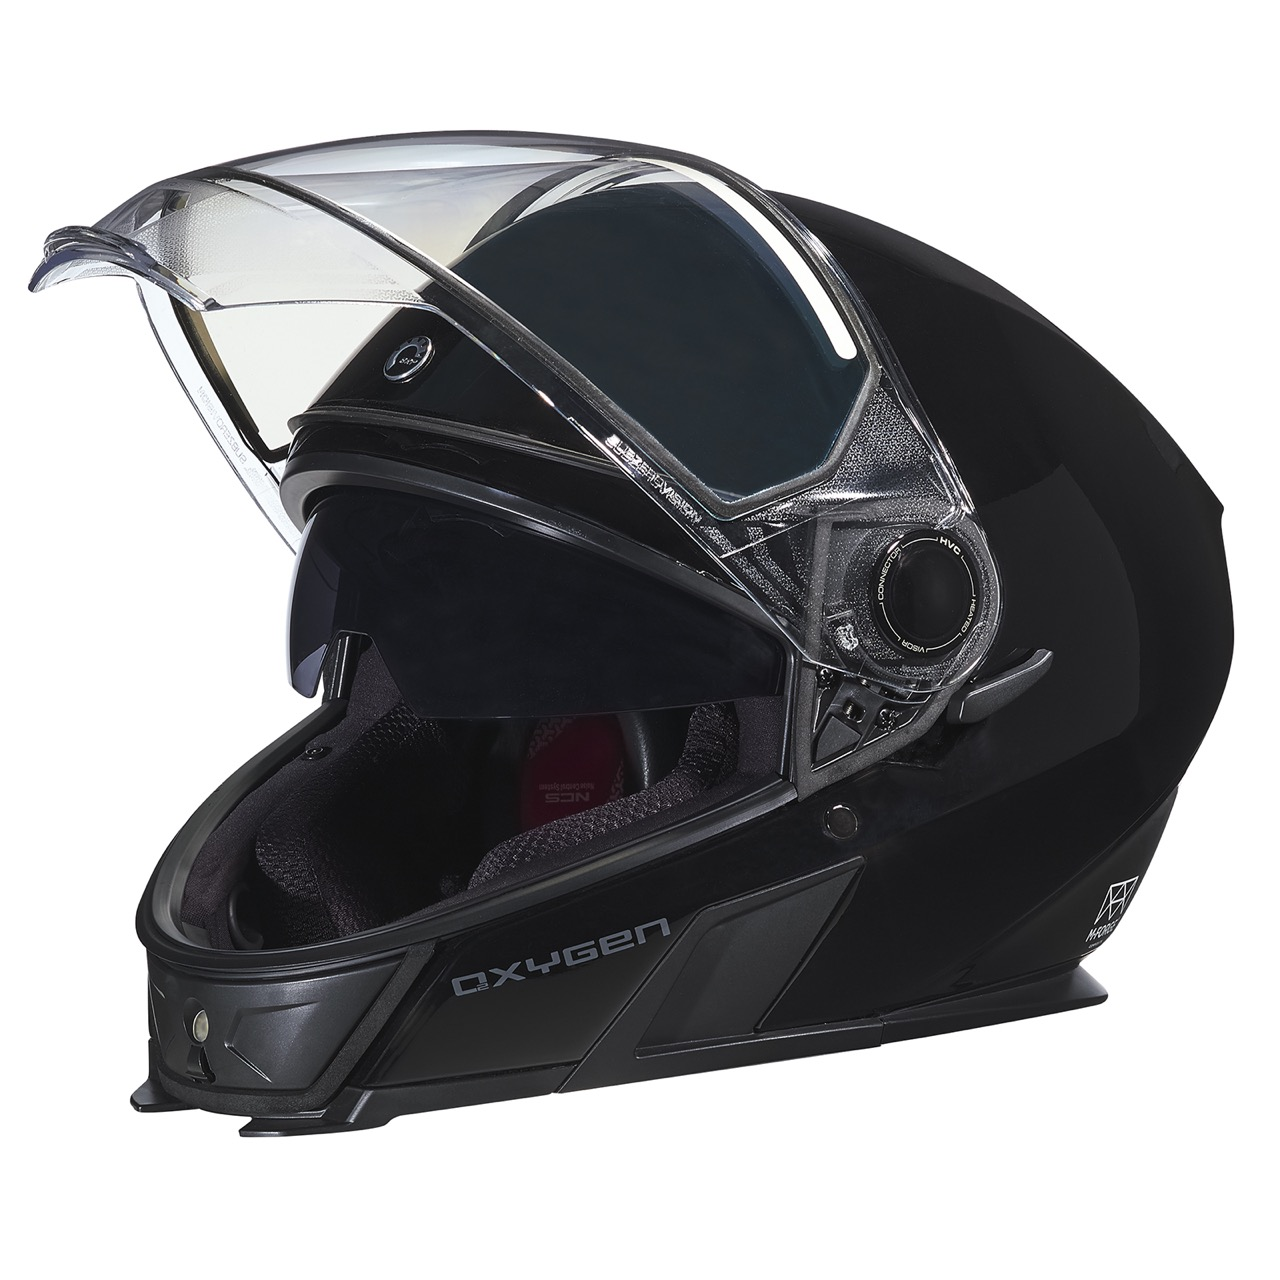 Snowmobile Helmets For Sale >> Oxygen Snowmobile Helmet Ultimate Product Review Intrepid Snowmobiler